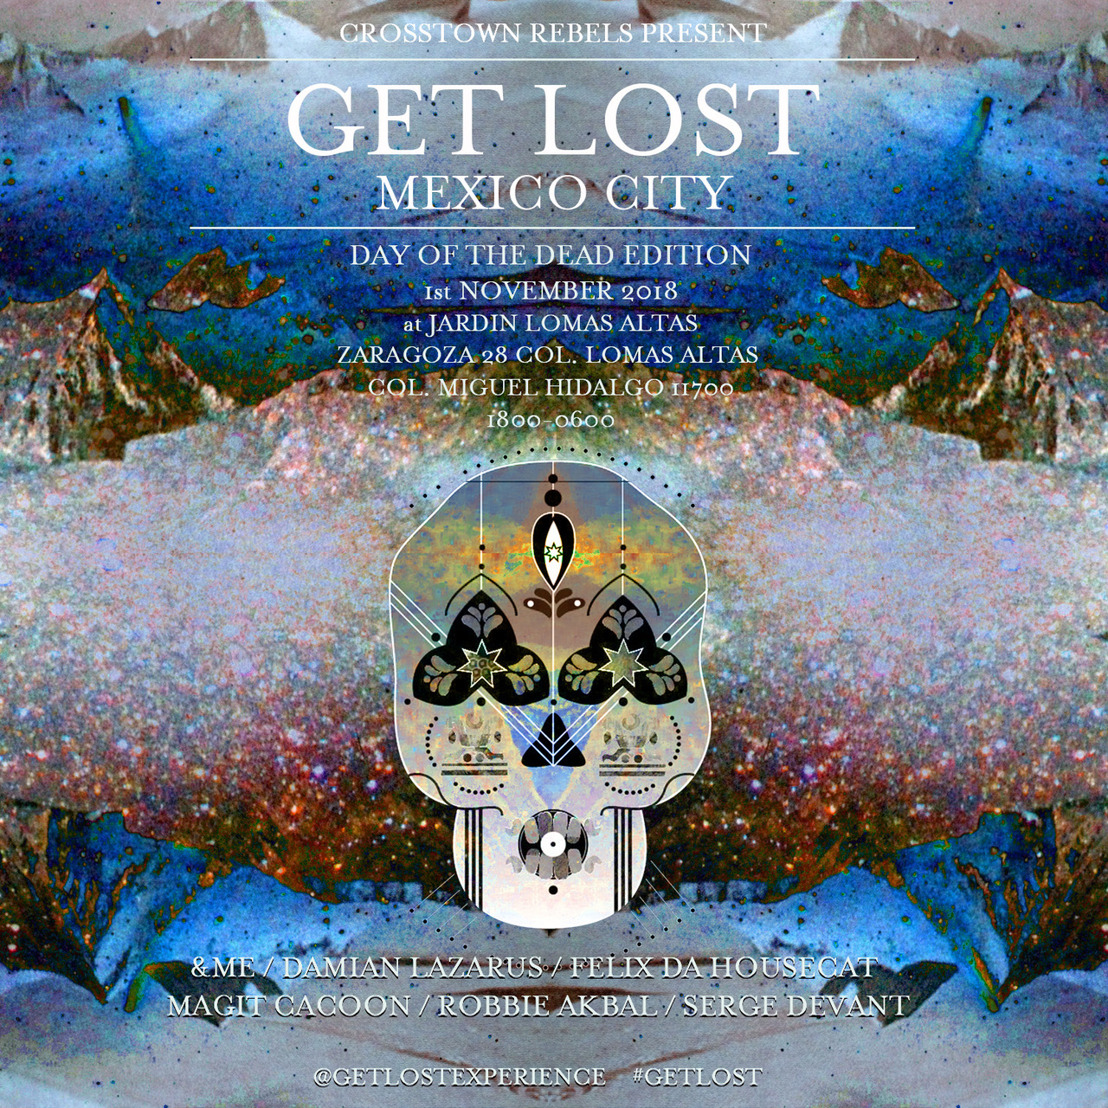 GET LOST MEXICO CITY DAY OF THE DEAD EDITION